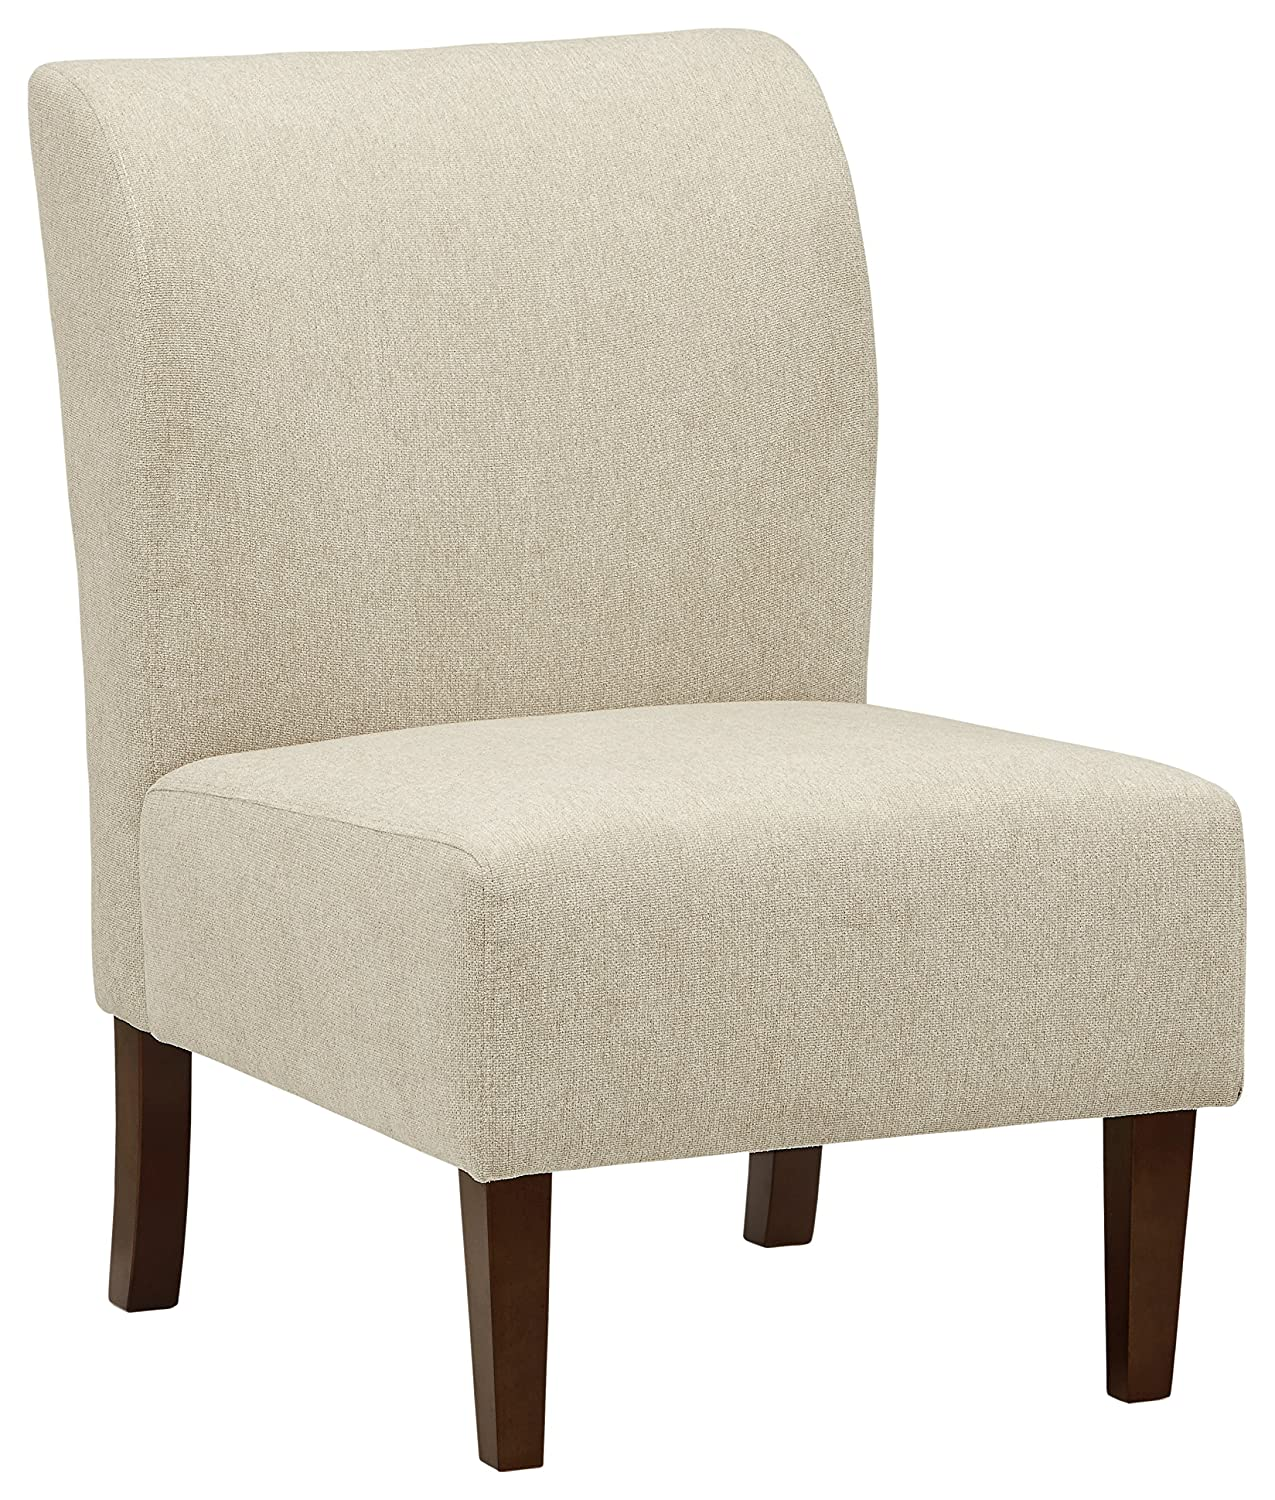 Modern Unique Accent Chairs.Stone Beam Lummi Modern Armless Living Room Accent Chair 21 6 W Shell